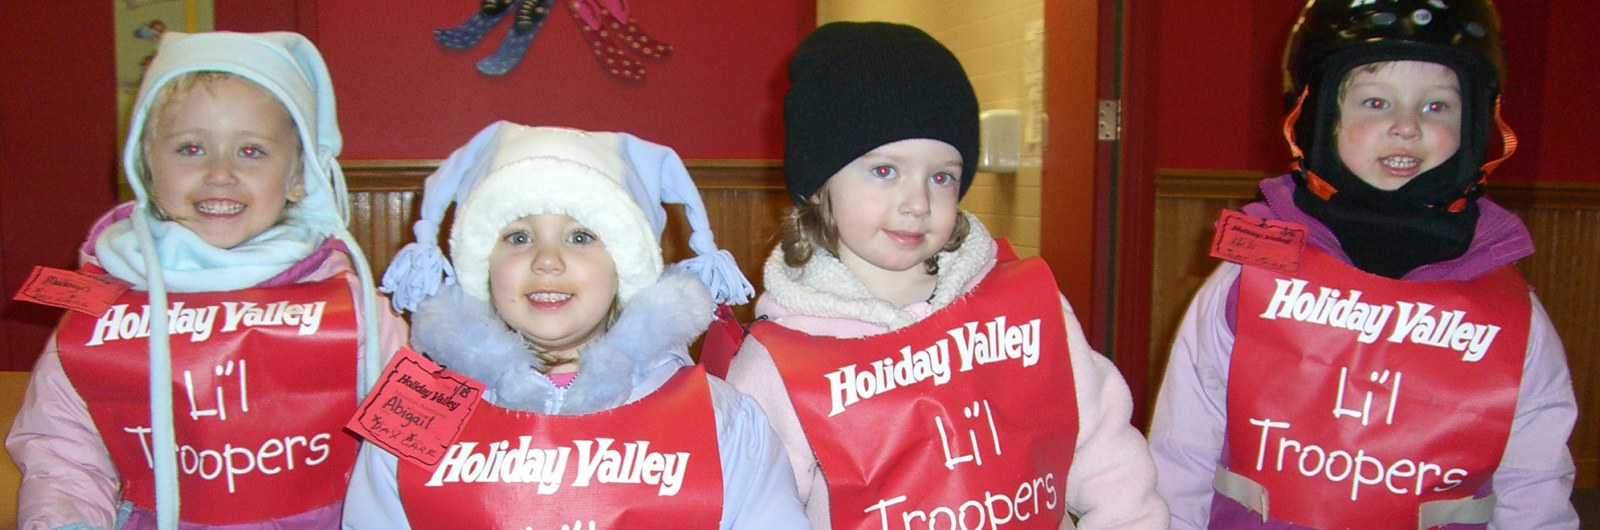 Four young children in snowsuits at Holliday Valley daycare